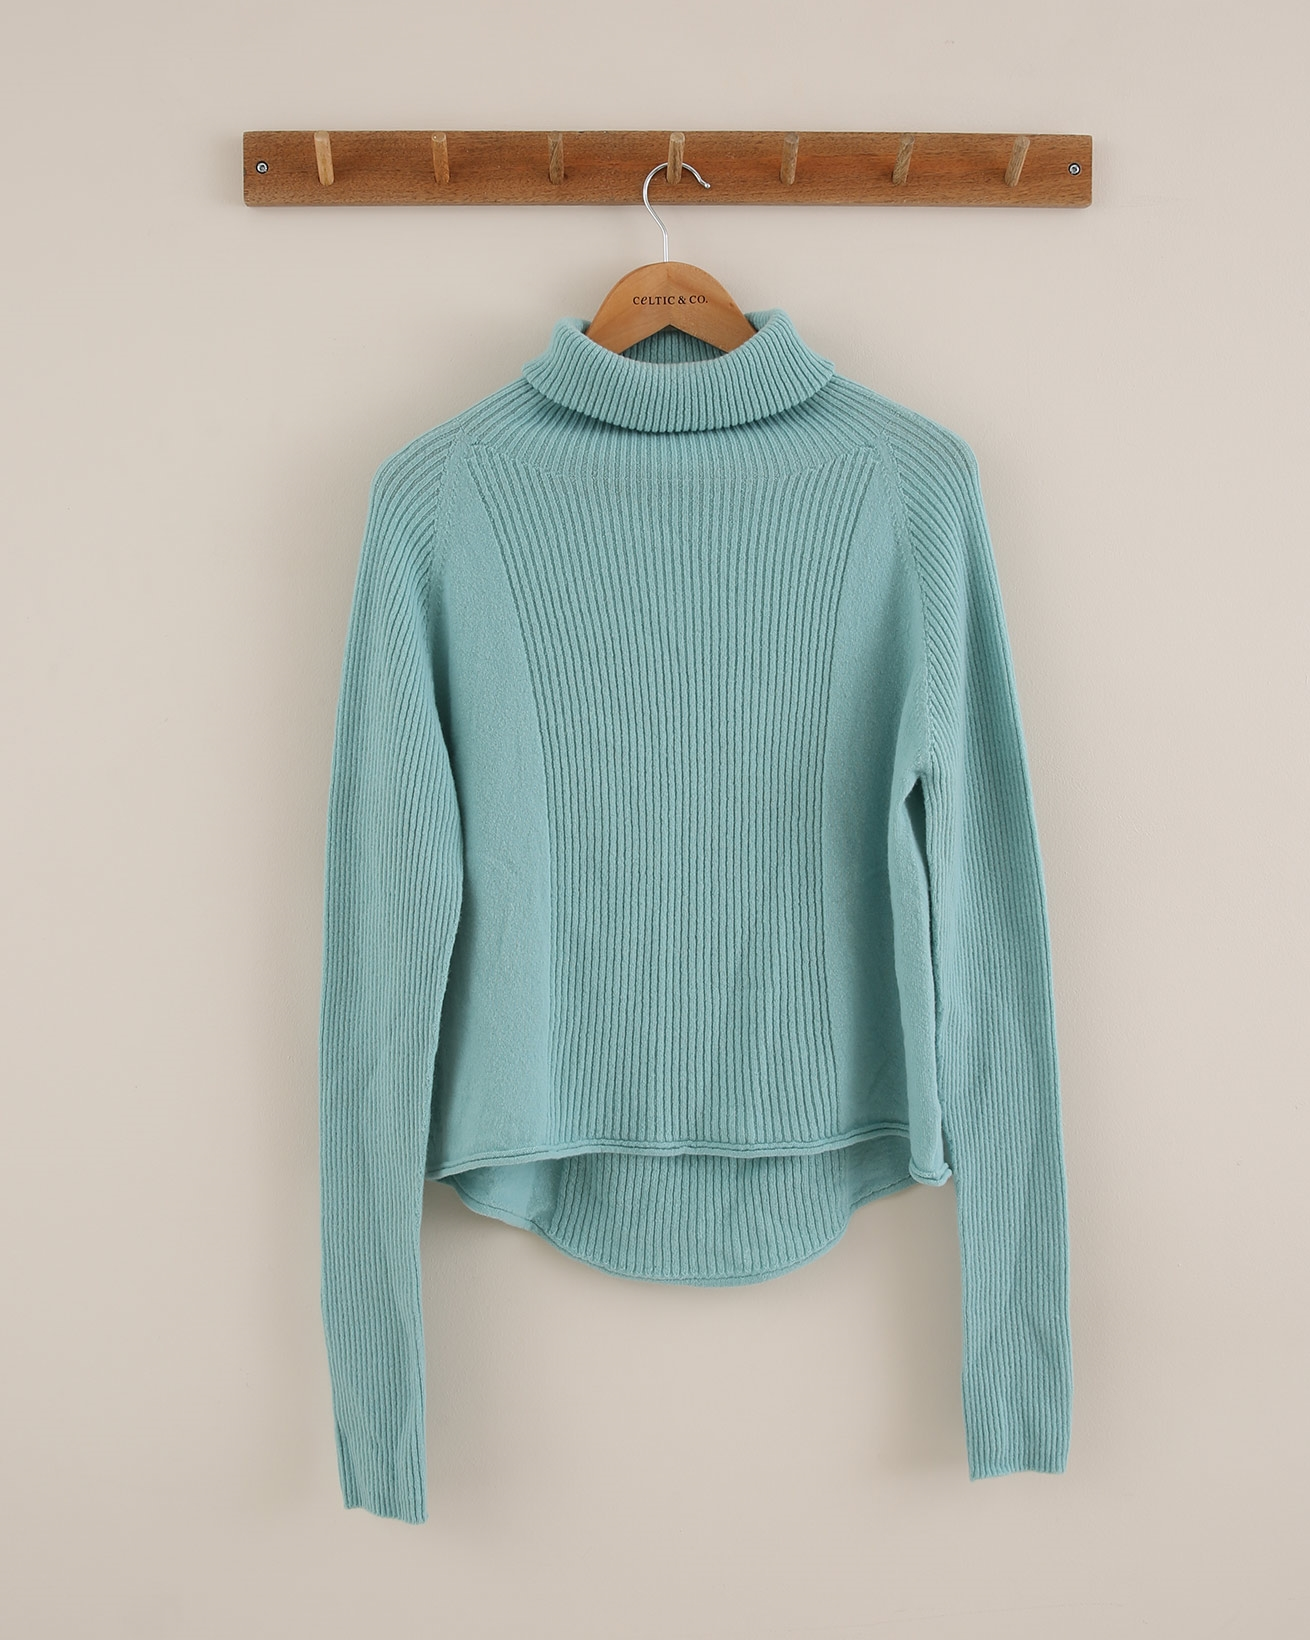 Ribbed Geelong Roll Neck - Size Small - Sky Blue - 1803